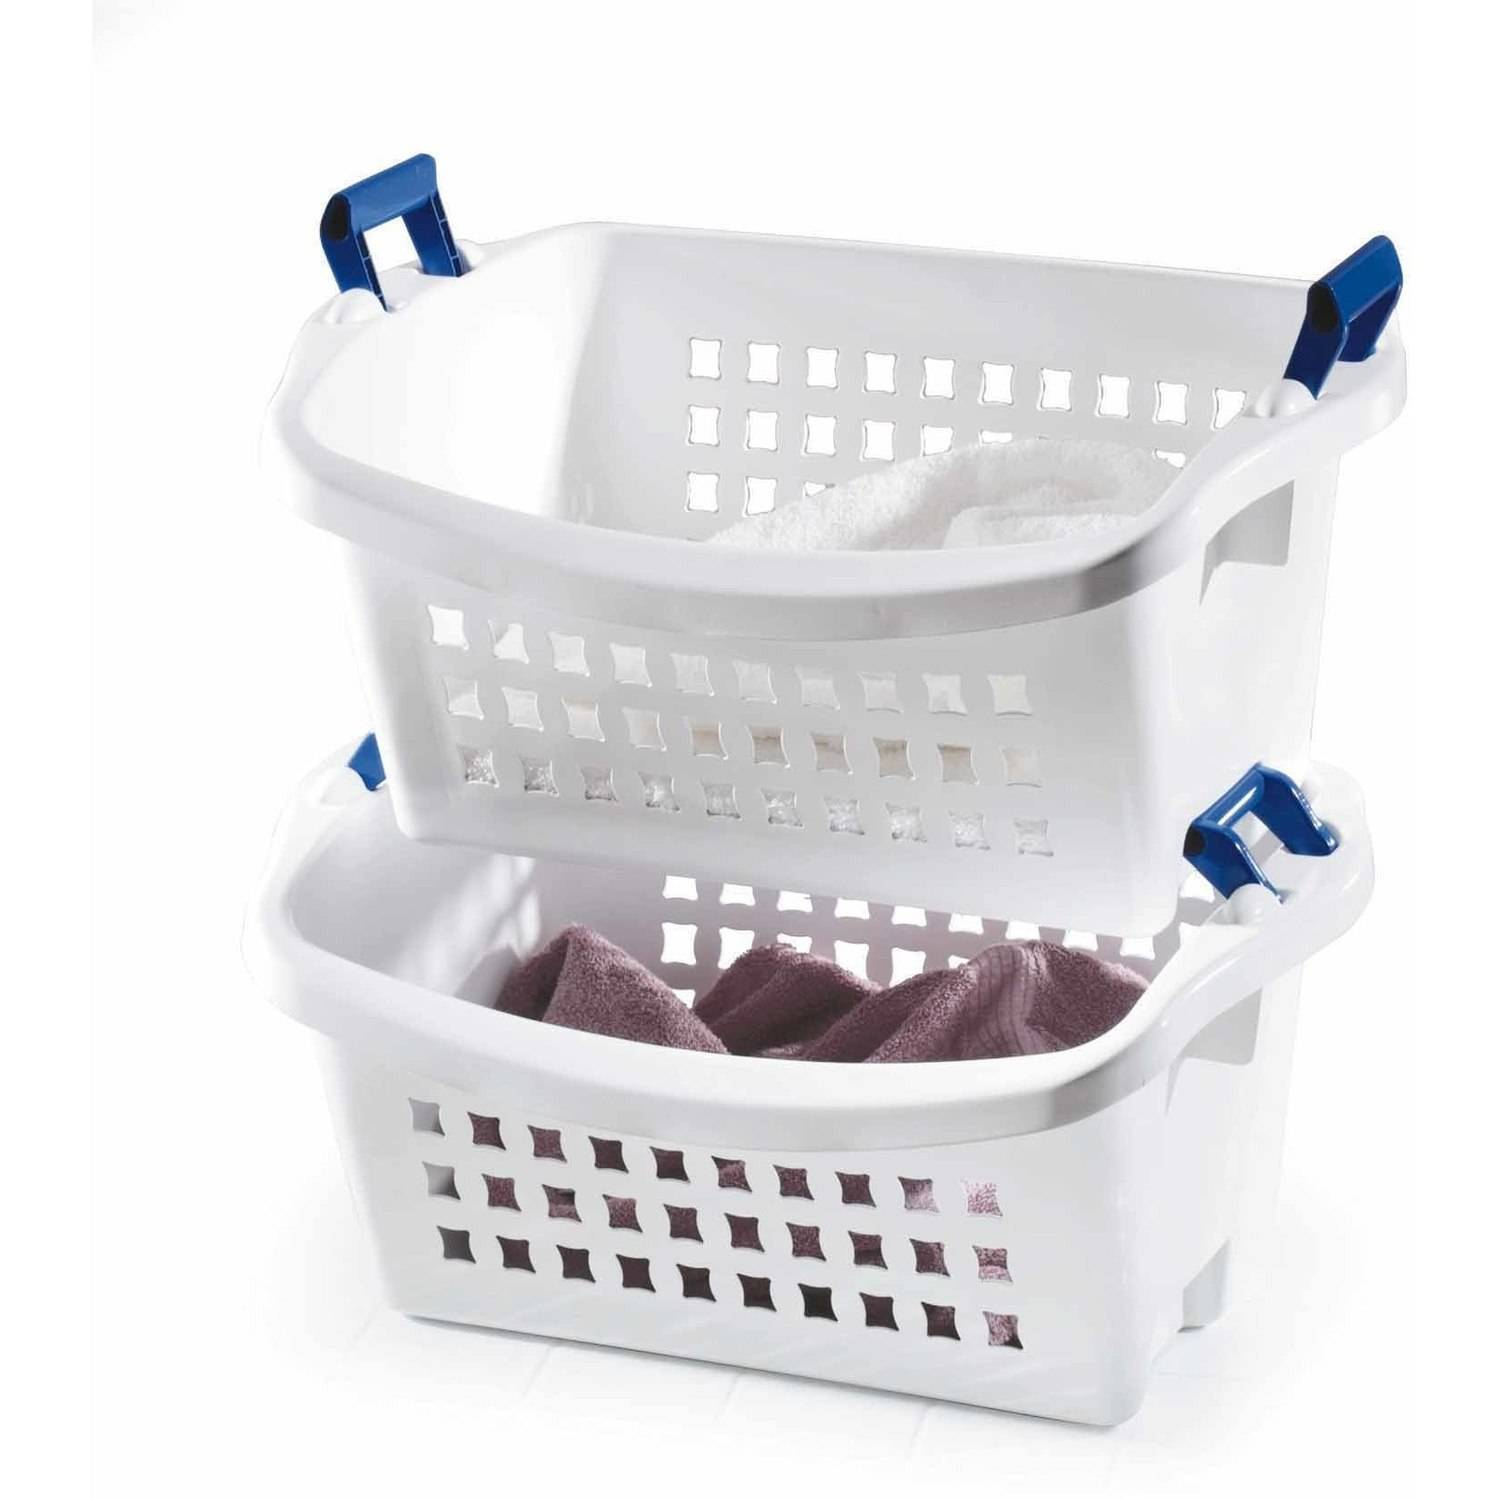 Rubbermaid 1.6 BU Stack-n-Sort Laundry Basket, White (1 Piece)